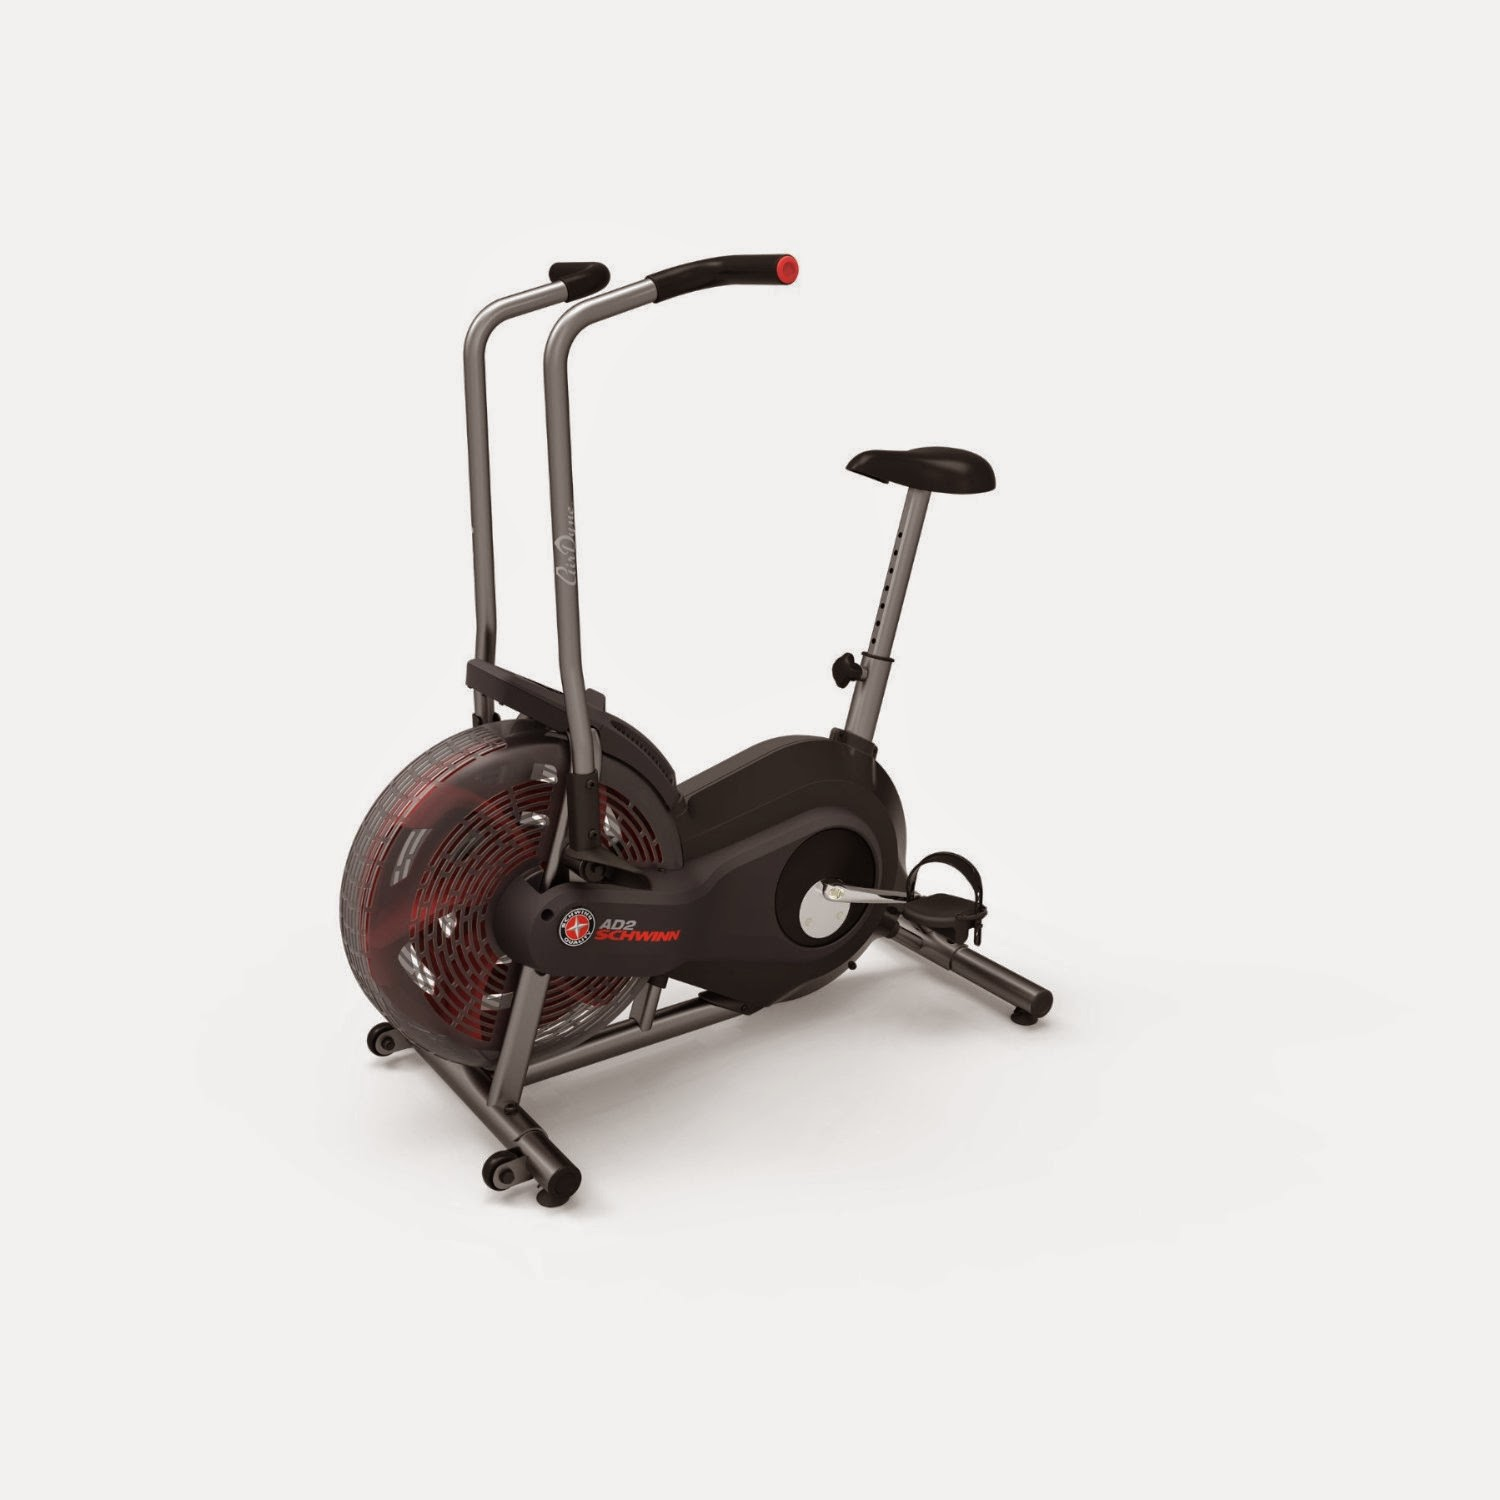 Schwinn AD2 Airdyne Exercise Bike in Black, picture, image, new black color now available, air exercise bike, review features & specifications